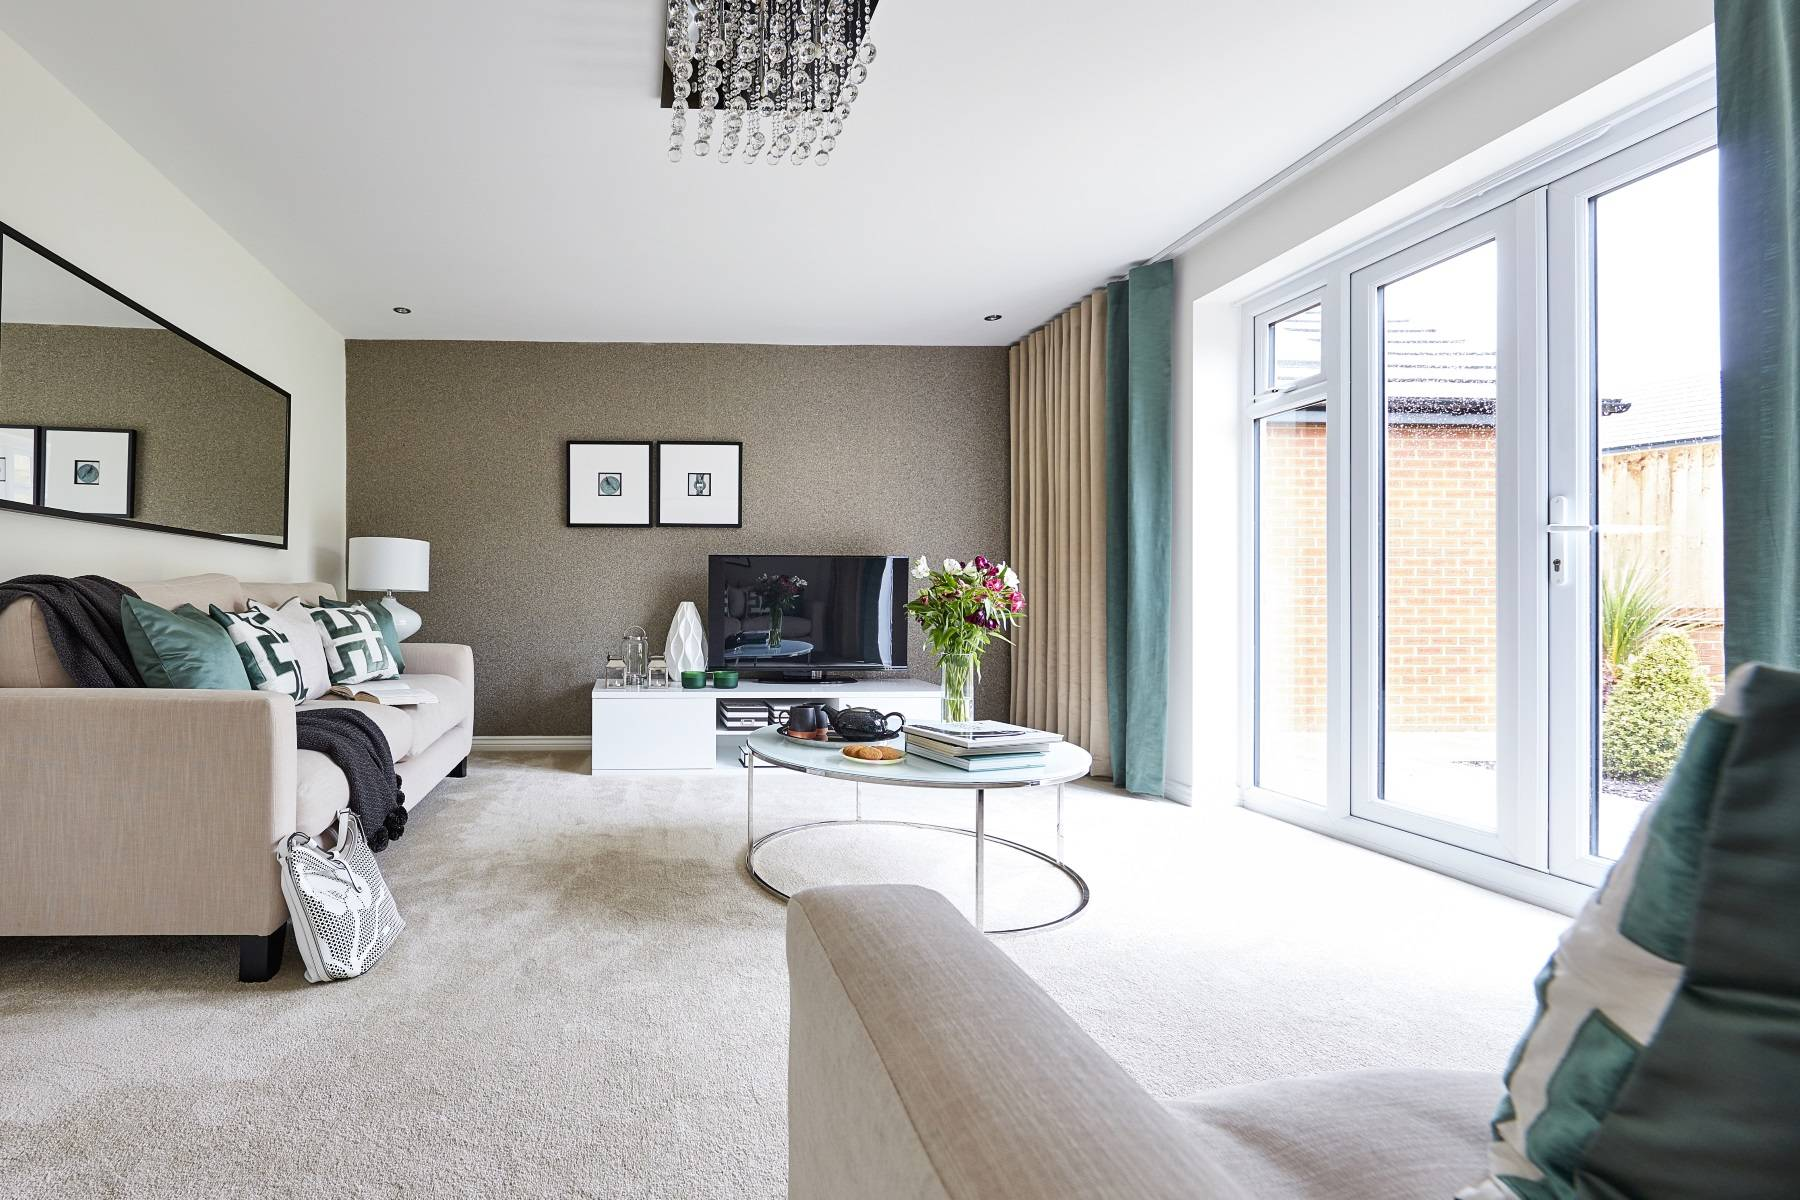 TW Exeter - Plumb Park - Dorchester example living room